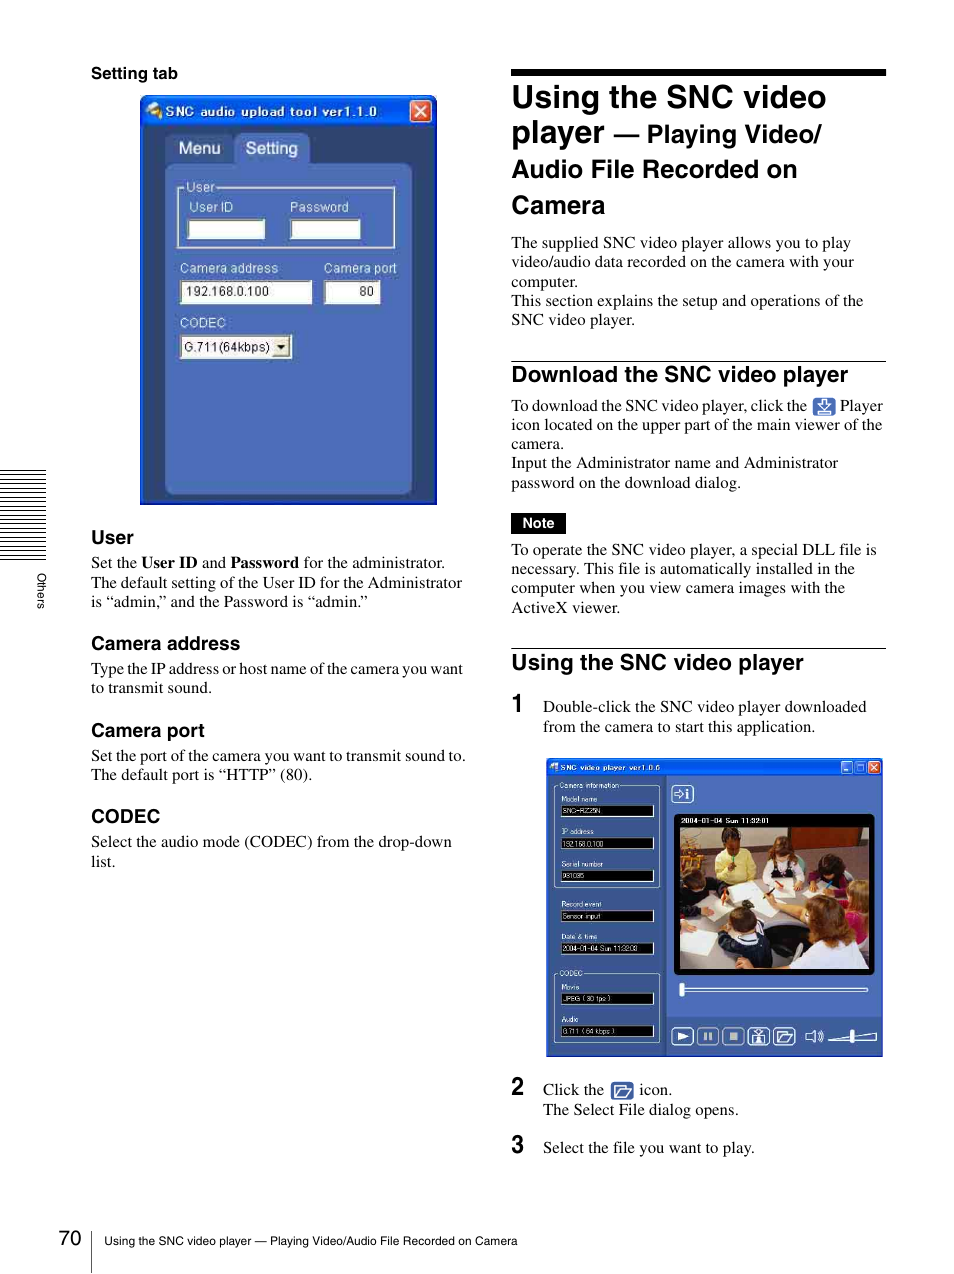 Download the snc video player, Using the snc video player